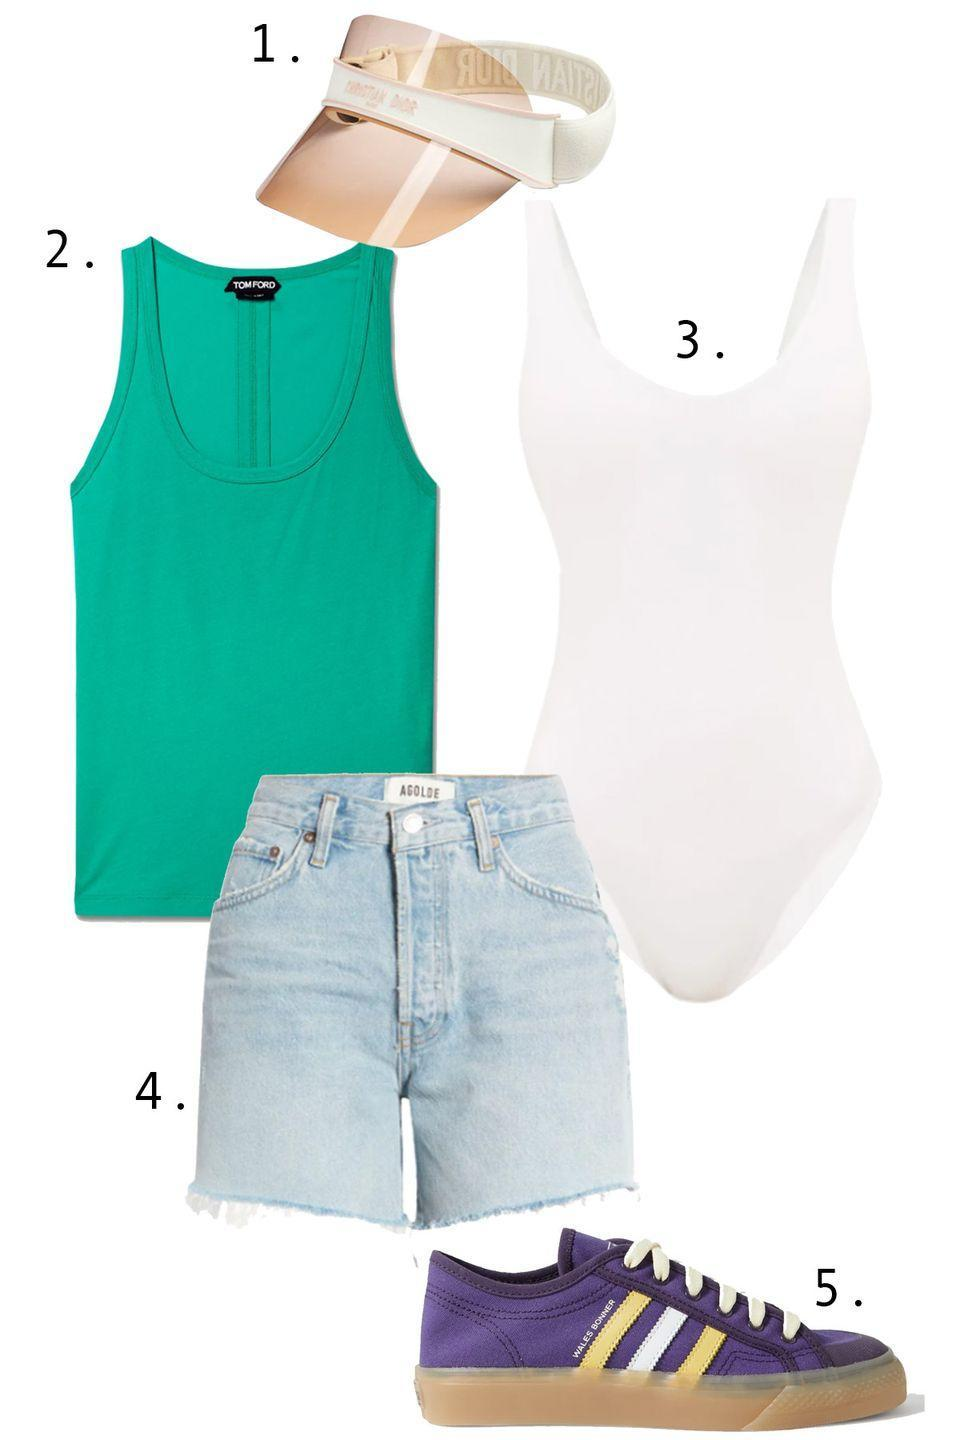 """<p>A day at the Rockaways calls for sporty functionality. Start with a simple <a href=""""https://www.townandcountrymag.com/style/a36675600/how-to-style-white-one-piece-swimsuit/"""" rel=""""nofollow noopener"""" target=""""_blank"""" data-ylk=""""slk:white maillot ("""" class=""""link rapid-noclick-resp"""">white maillot (</a>which can double as a bright white tank), layer a singlet over it, and just add a slightly longer pair of cutoffs. Finish things off with a visor and a pair of fun sneakers.</p><ol><li><a href=""""https://go.skimresources.com?id=74968X1525087&xs=1&url=https%3A%2F%2Fwww.saksfifthavenue.com%2Fproduct%2Fdior-visor-0400014153922.html%3Fdwvar_0400014153922_color%3DBEIGE"""" rel=""""nofollow noopener"""" target=""""_blank"""" data-ylk=""""slk:Dior visor"""" class=""""link rapid-noclick-resp"""">Dior visor</a> 2. <a href=""""https://go.skimresources.com?id=74968X1525087&xs=1&url=https%3A%2F%2Fwww.net-a-porter.com%2Fen-us%2Fshop%2Fproduct%2Ftom-ford%2Fclothing%2Ftanks-and-camis%2Fcotton-jersey-tank%2F11452292645938306"""" rel=""""nofollow noopener"""" target=""""_blank"""" data-ylk=""""slk:Tom Ford tank"""" class=""""link rapid-noclick-resp"""">Tom Ford tank</a> 3. <a href=""""https://go.skimresources.com?id=74968X1525087&xs=1&url=https%3A%2F%2Fwww.matchesfashion.com%2Fus%2Fproducts%2FJade-Swim-Contour-scoop-back-swimsuit-1342091"""" rel=""""nofollow noopener"""" target=""""_blank"""" data-ylk=""""slk:Jade Swim suit"""" class=""""link rapid-noclick-resp"""">Jade Swim suit</a> 4. <a href=""""https://go.skimresources.com?id=74968X1525087&xs=1&url=https%3A%2F%2Fwww.nordstrom.com%2Fs%2Fagolde-parker-distressed-organic-cotton-denim-shorts-parade-light-indigo%2F5796337%3Forigin%3Dcategory-personalizedsort%26breadcrumb%3DHome%252FWomen%252FClothing%252FShorts%26color%3D458"""" rel=""""nofollow noopener"""" target=""""_blank"""" data-ylk=""""slk:Agolde shorts"""" class=""""link rapid-noclick-resp"""">Agolde shorts</a> 5. <a href=""""https://go.skimresources.com?id=74968X1525087&xs=1&url=https%3A%2F%2Fwww.carbon38.com%2Fproduct%2Fnizza-lo-unity-purple-glaze-unity-purple-glaze-cream-white"""" rel=""""nofollow noopene"""